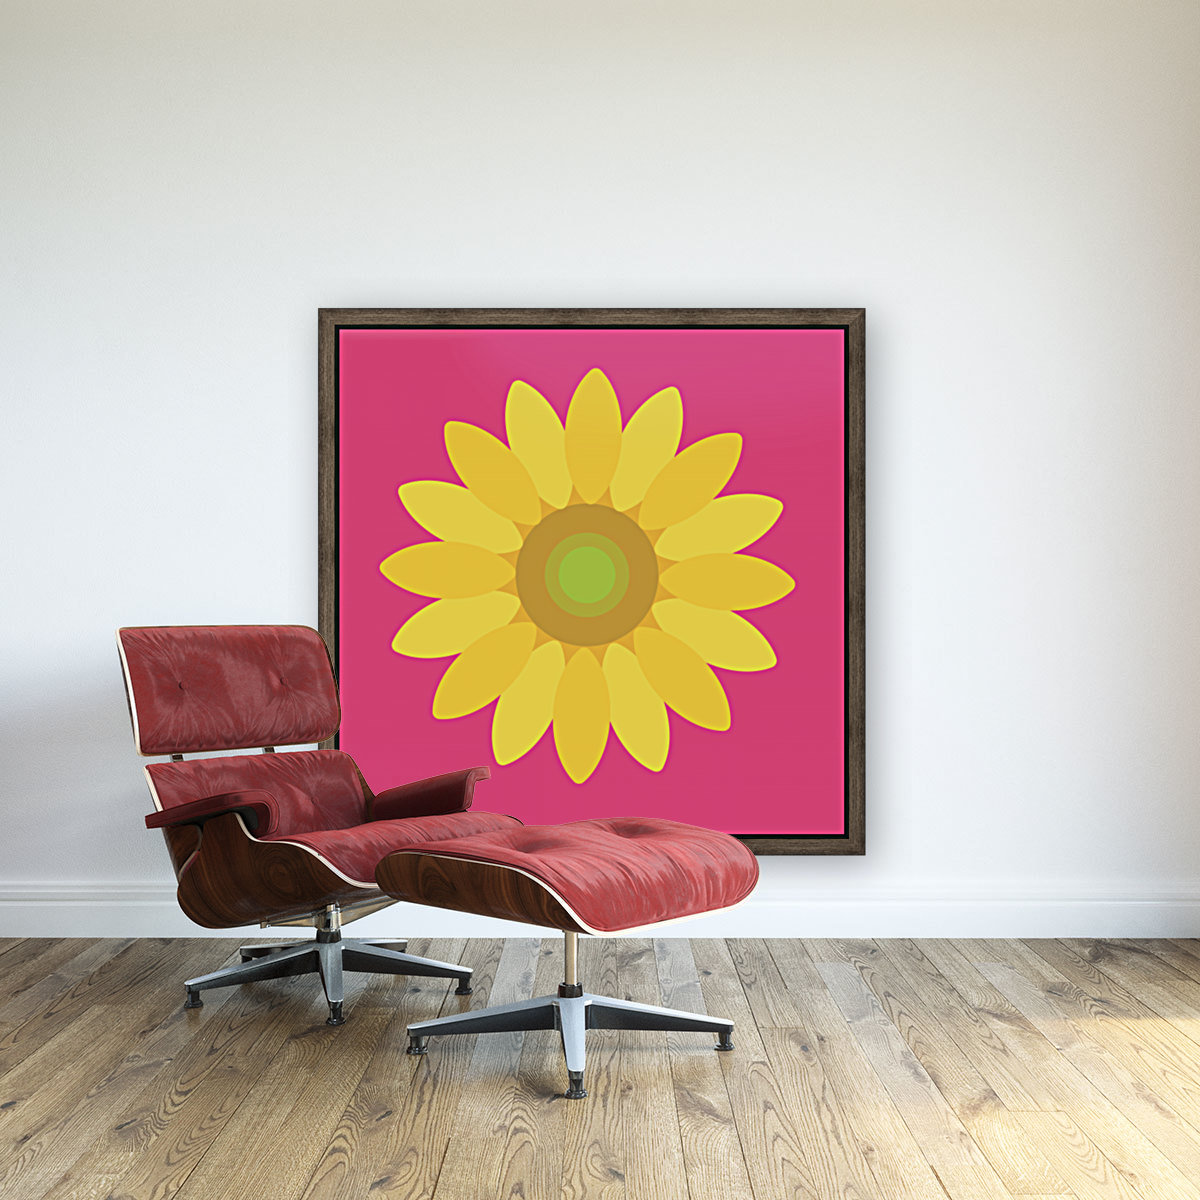 Sunflower (10)_1559876455.9347  Art